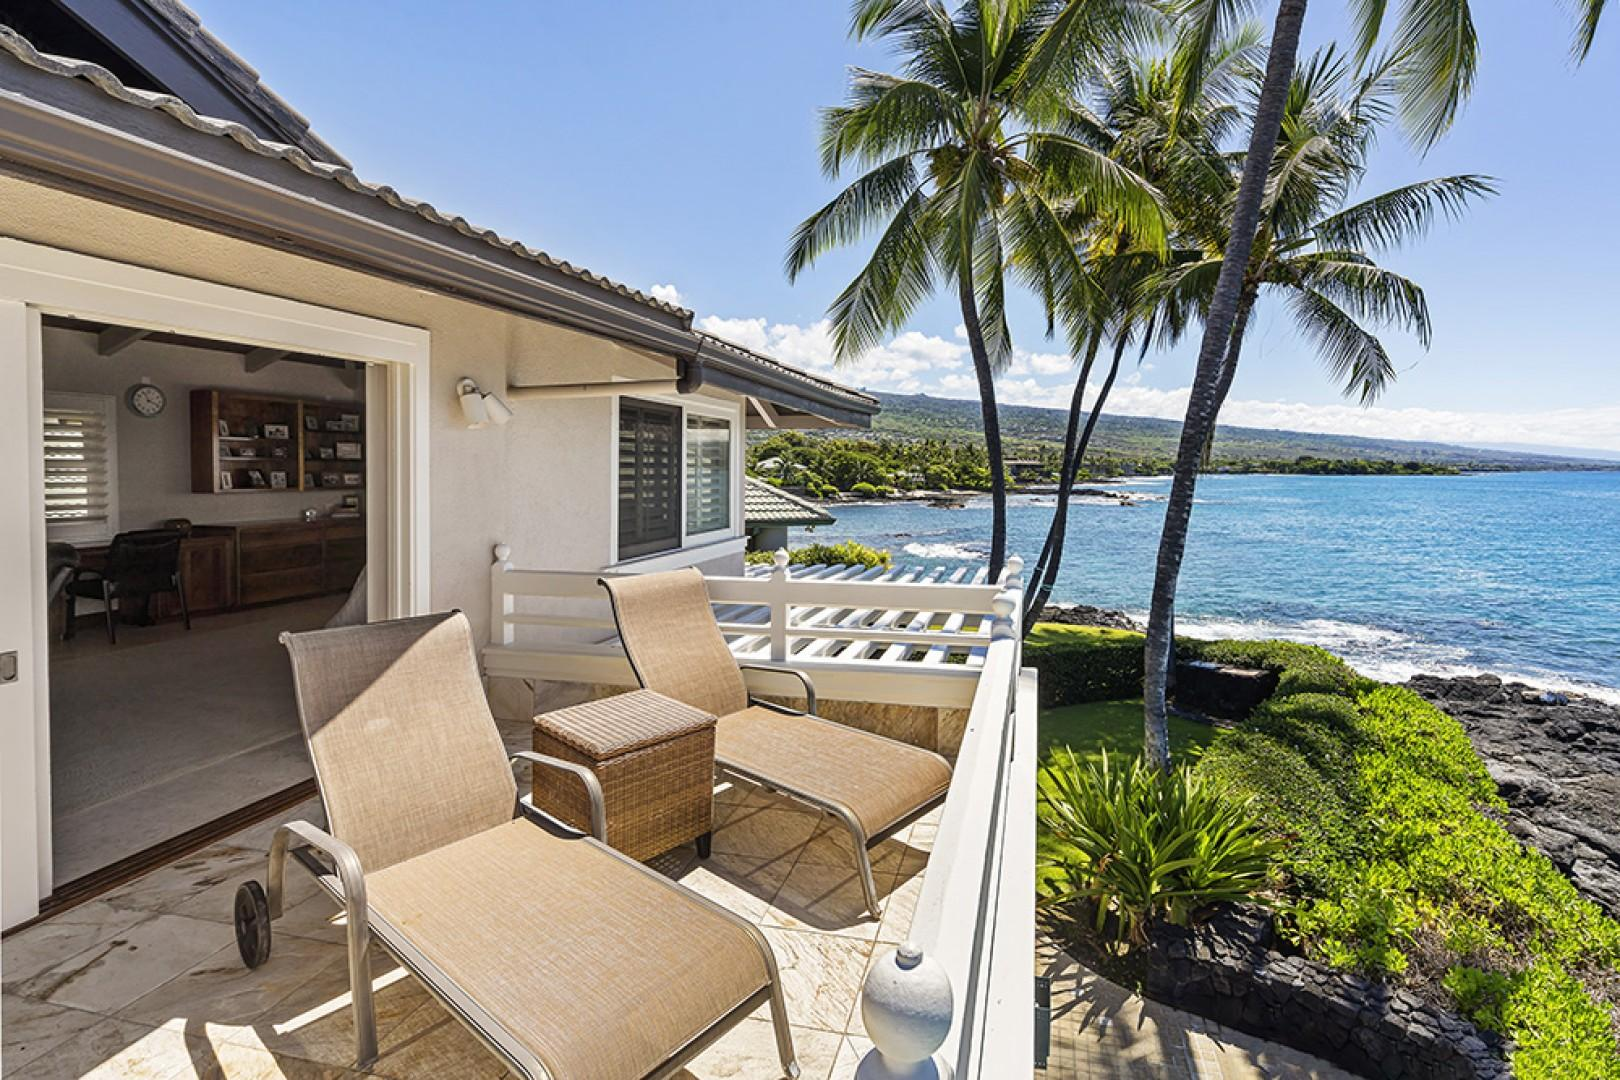 Facing back into the Master bedroom from the Private Lanai showcasing the Kona shoreline